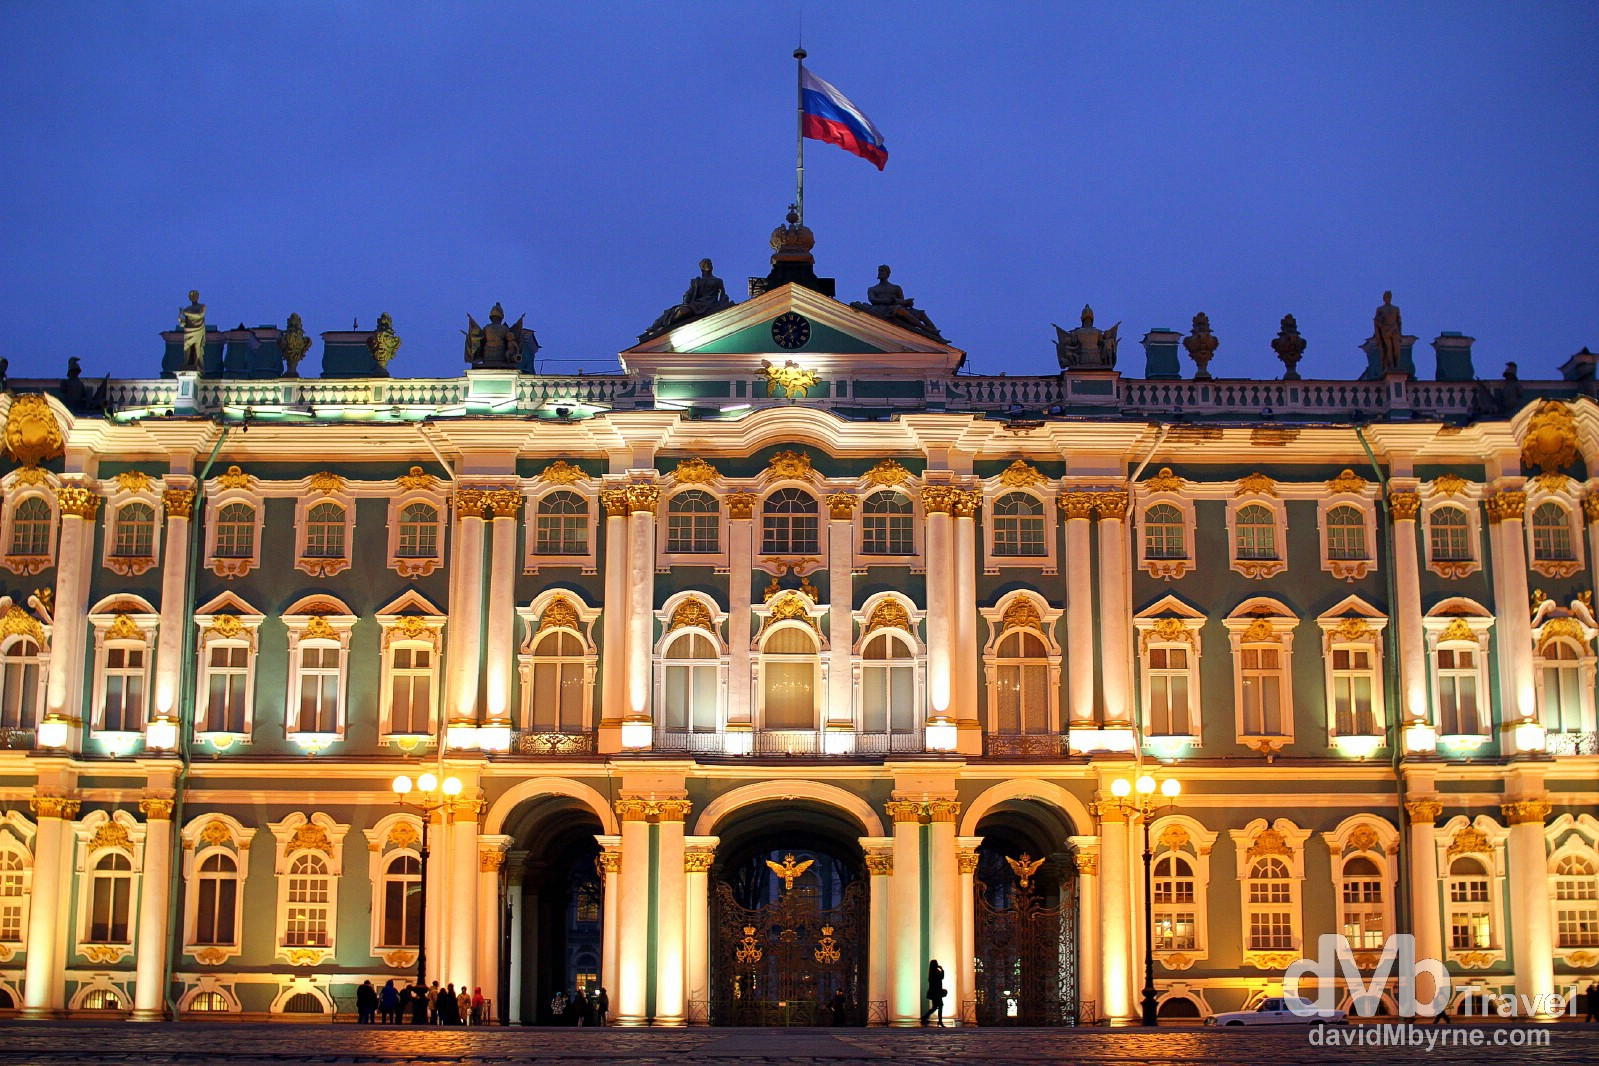 A section of the imposing façade of The Winter Palace in Palace Square, St Petersburg, Russia. November 22nd 2012.